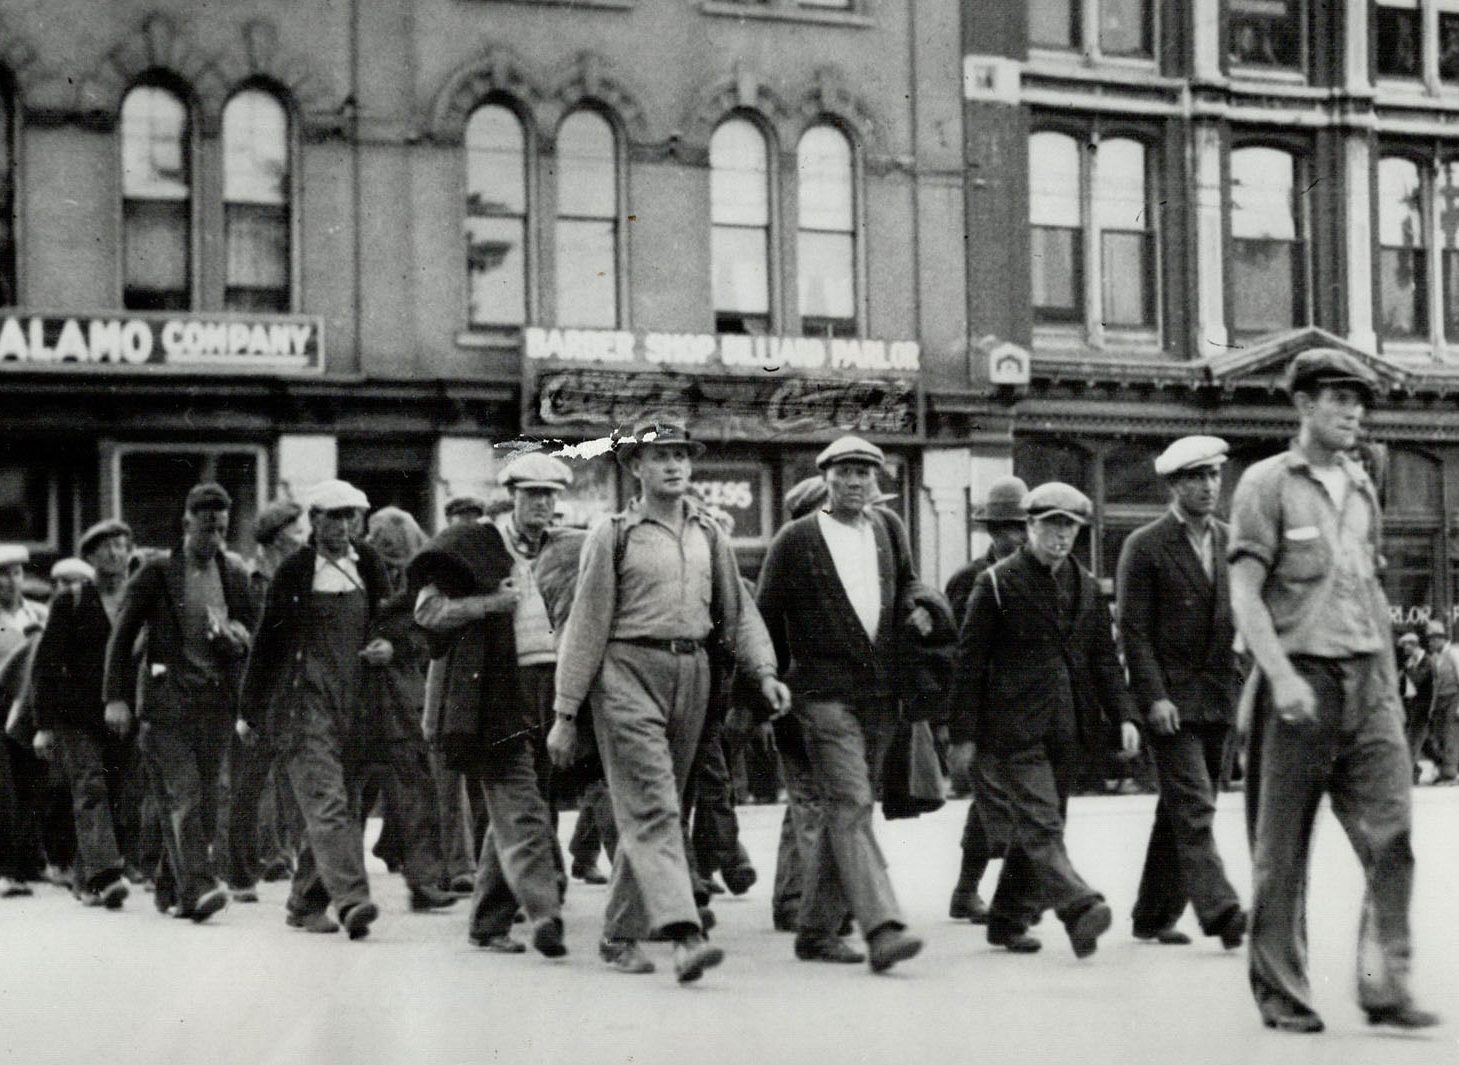 Unemployed men march during the depression